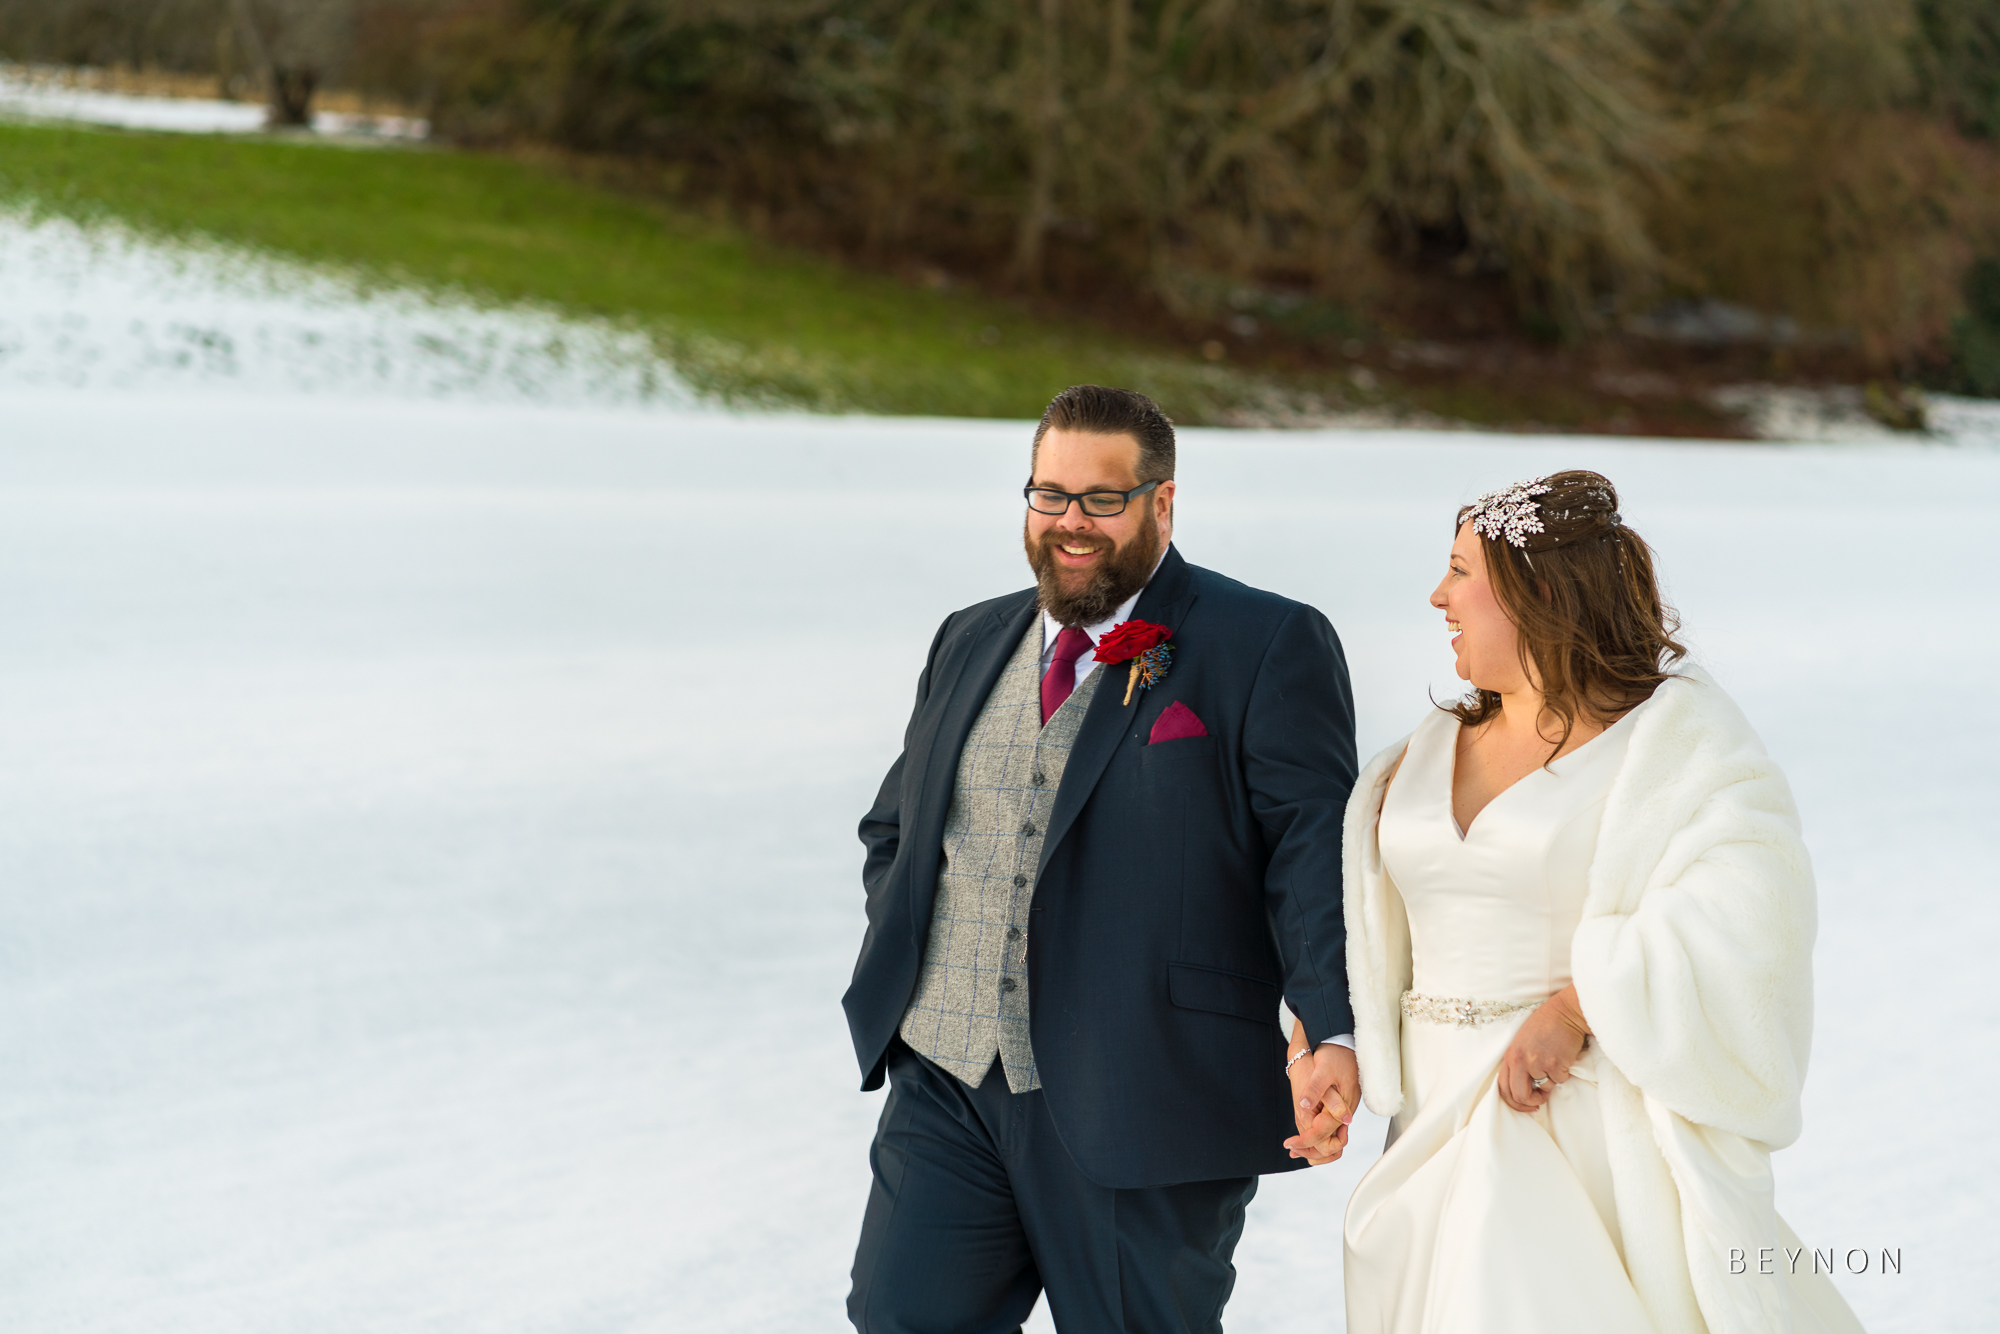 The Bride and Groom take a walk together